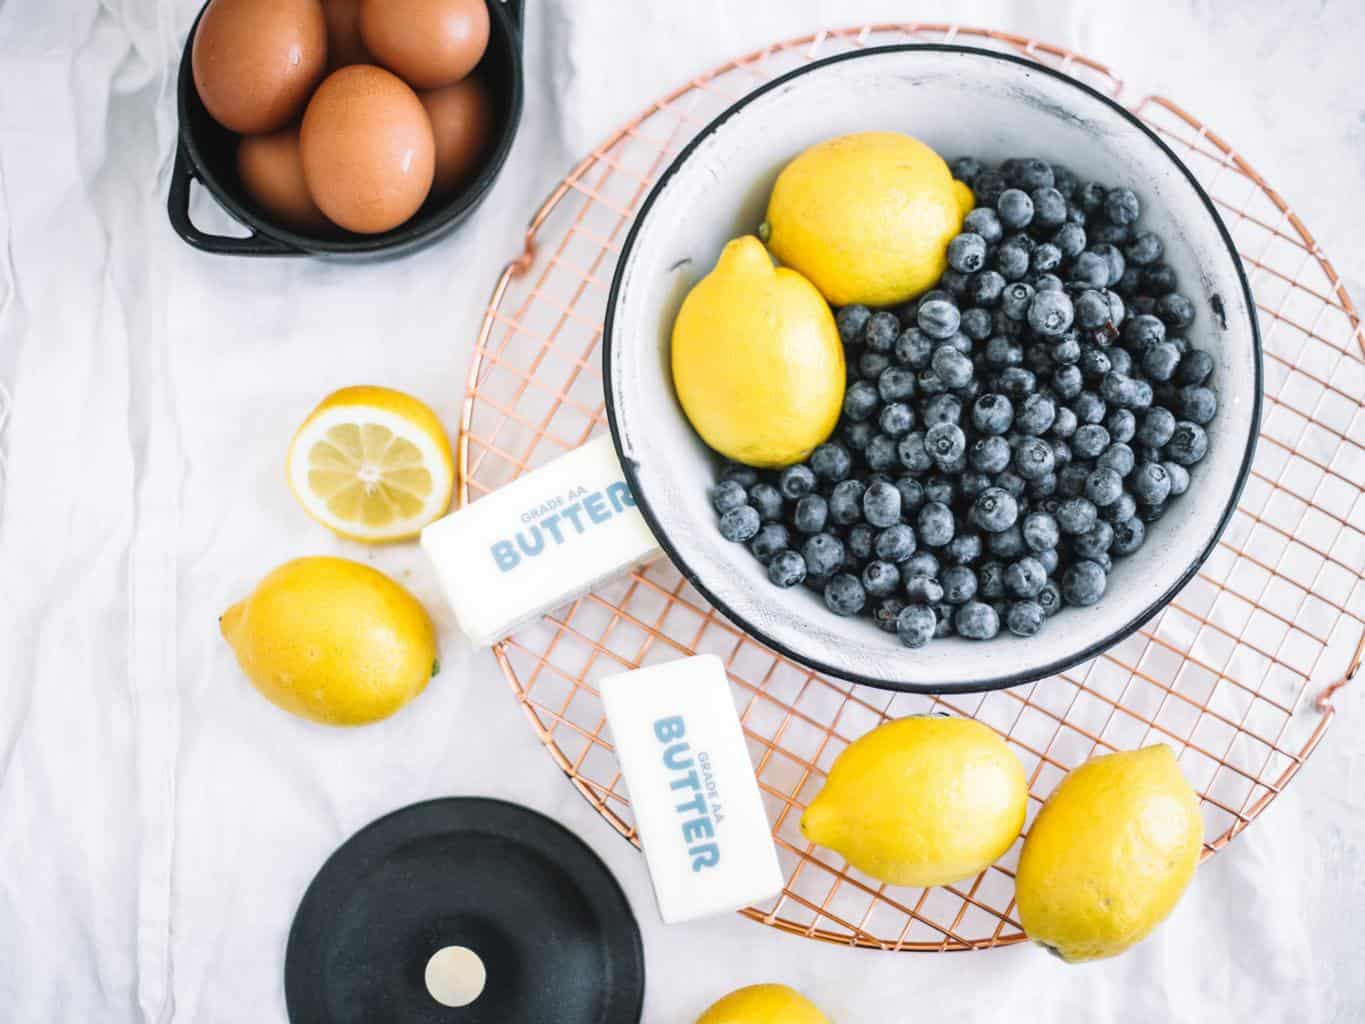 lemons and blueberries in white bowl, butter, lemons and eggs